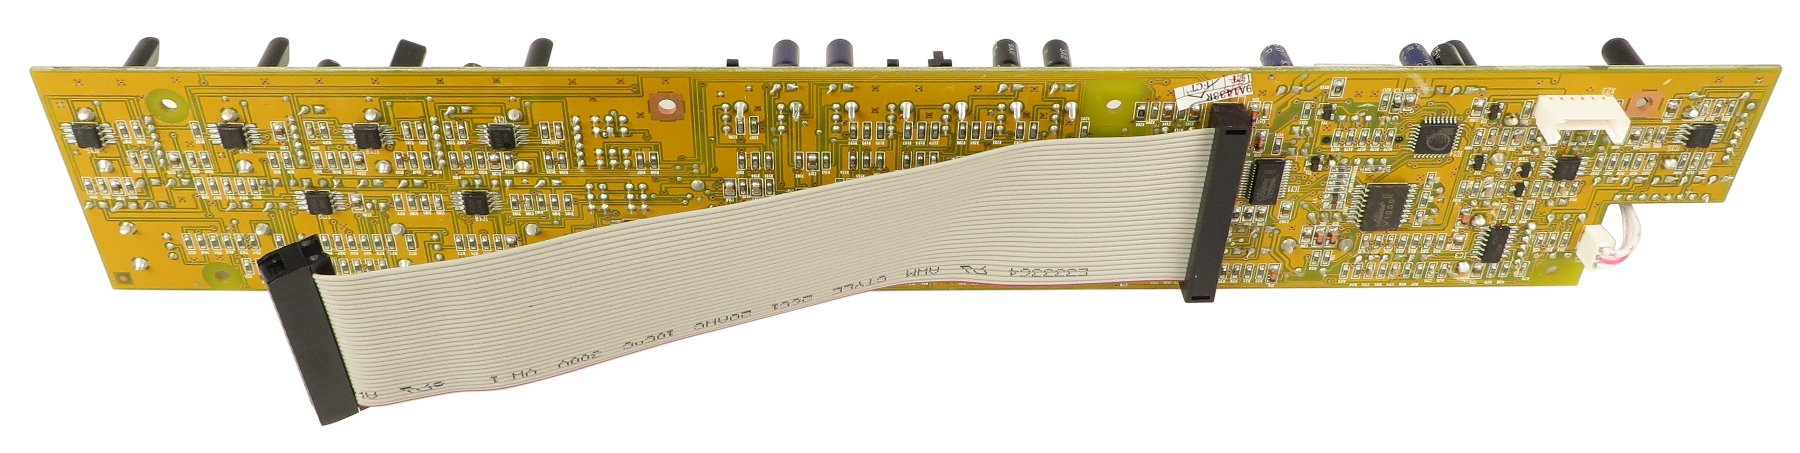 Front Preamp PCB Assembly for K3000FX and K1800FX